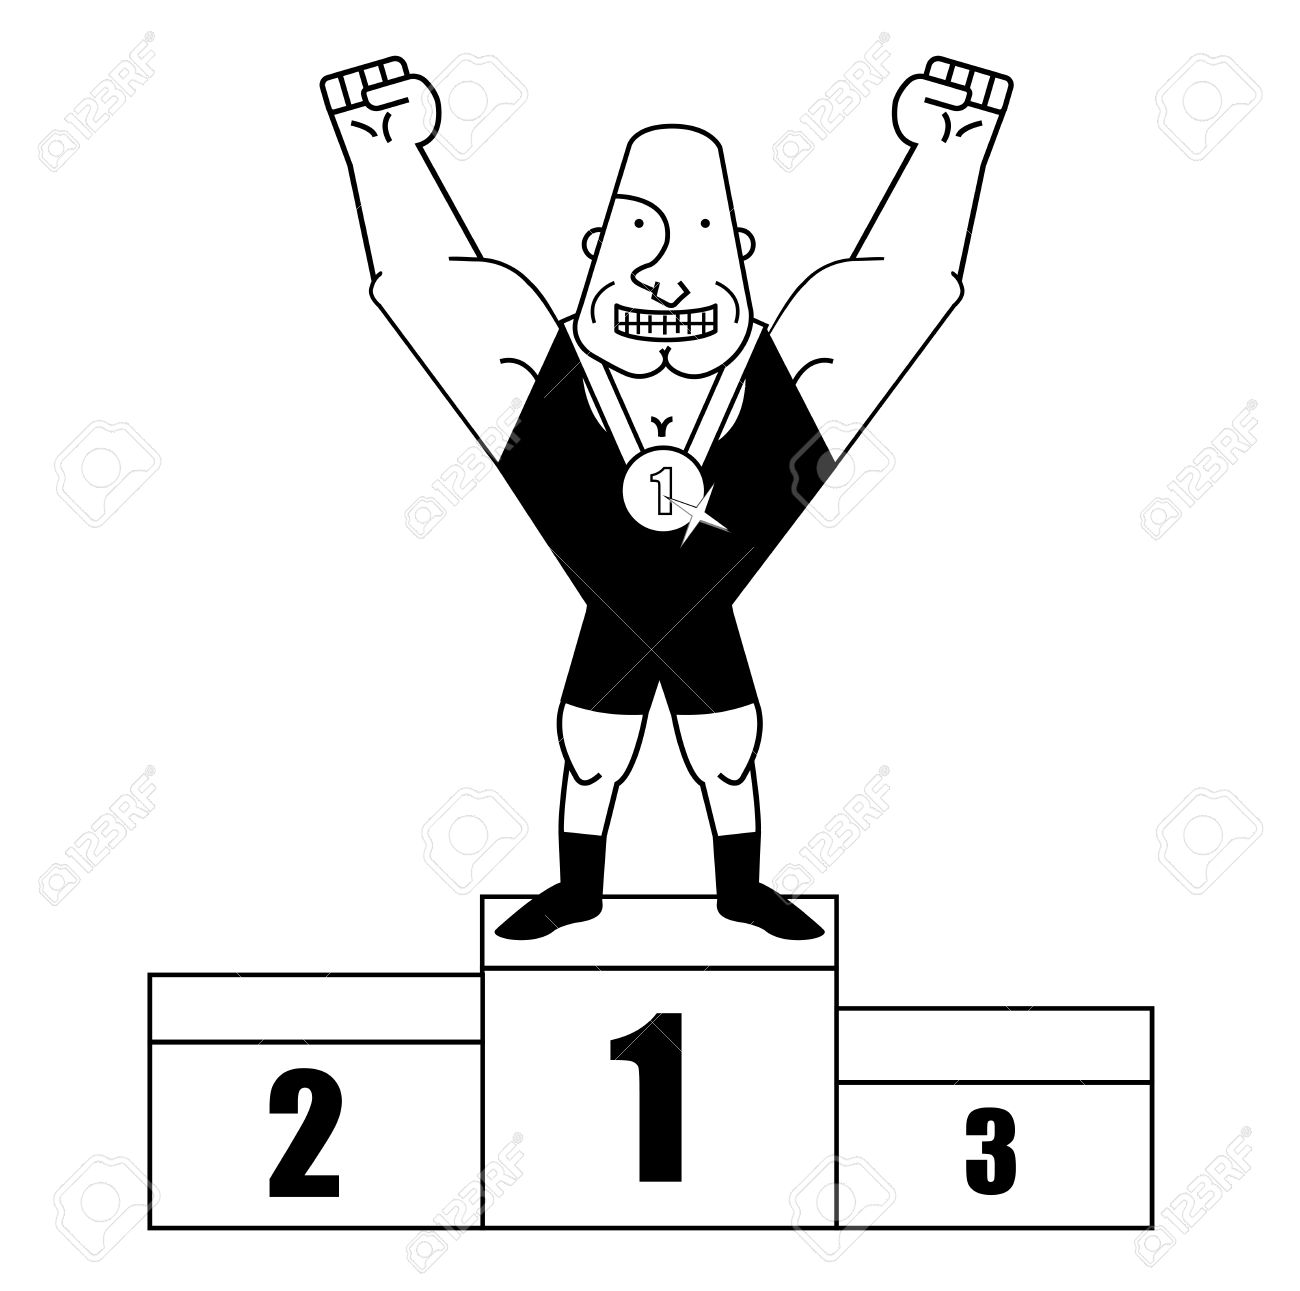 Sportsman clipart clipart black and white stock Sportsman standing on podium. Contour » Clipart Station clipart black and white stock